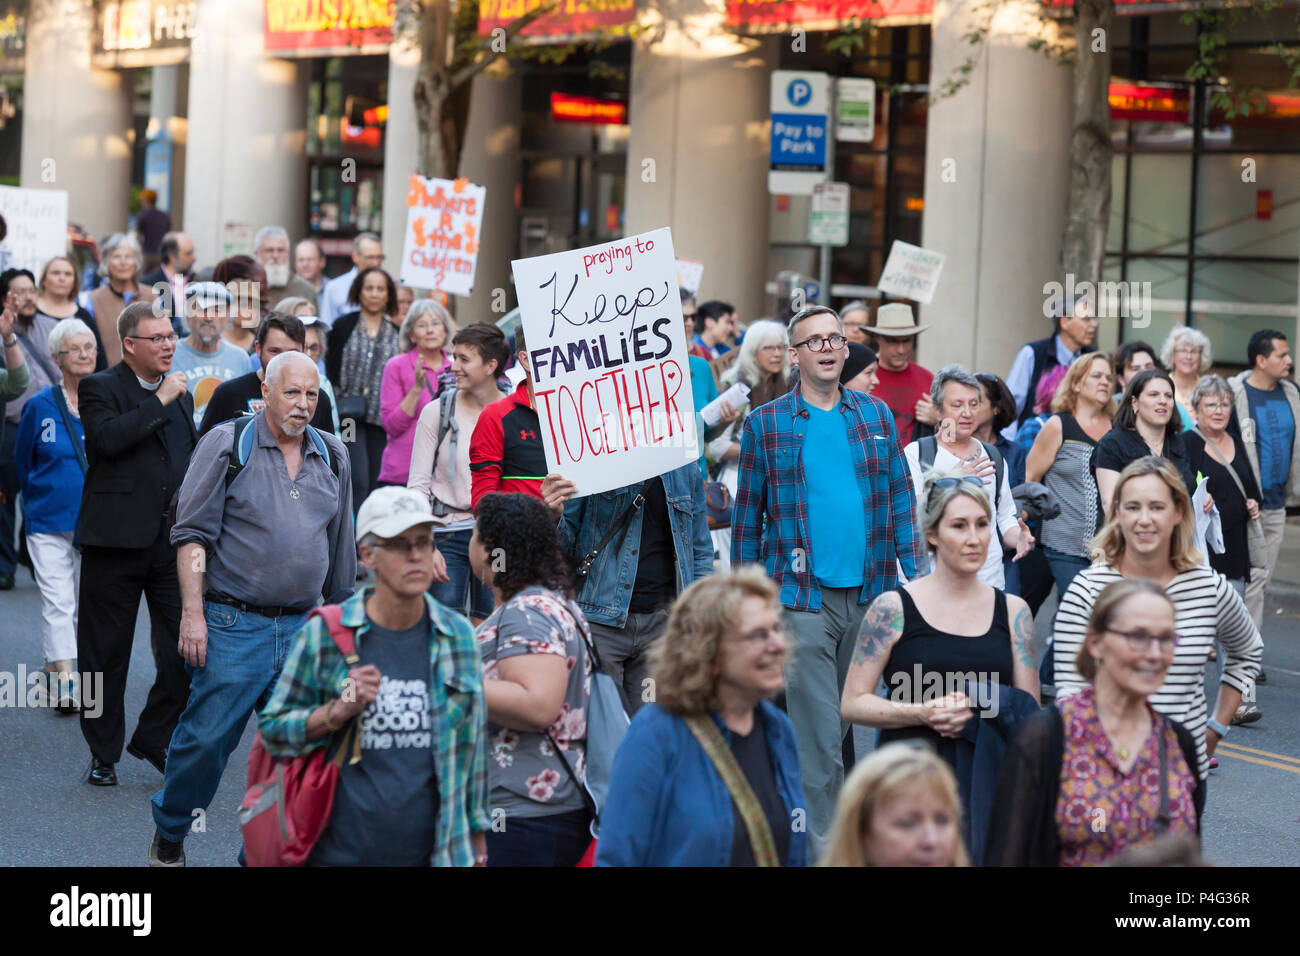 Seattle, USA. 21 June 2018. A contingent of clergy leads a procession along Broadway Avenue E. Hundreds of supporters gathered at St. Mark's Episcopal Cathedral in Capitol Hill for an interfaith prayer and vigil in support of migrants and asylum-seekers who come to the U.S. and to protest the inhumane separation of children from their parents. The two mile 'Prayer and Procession for Families at the Border' began at Saint Mark's Episcopal Cathedral in ended at St. James Roman Catholic Cathedral in First Hill. Credit: Paul Christian Gordon/Alamy Live News - Stock Image